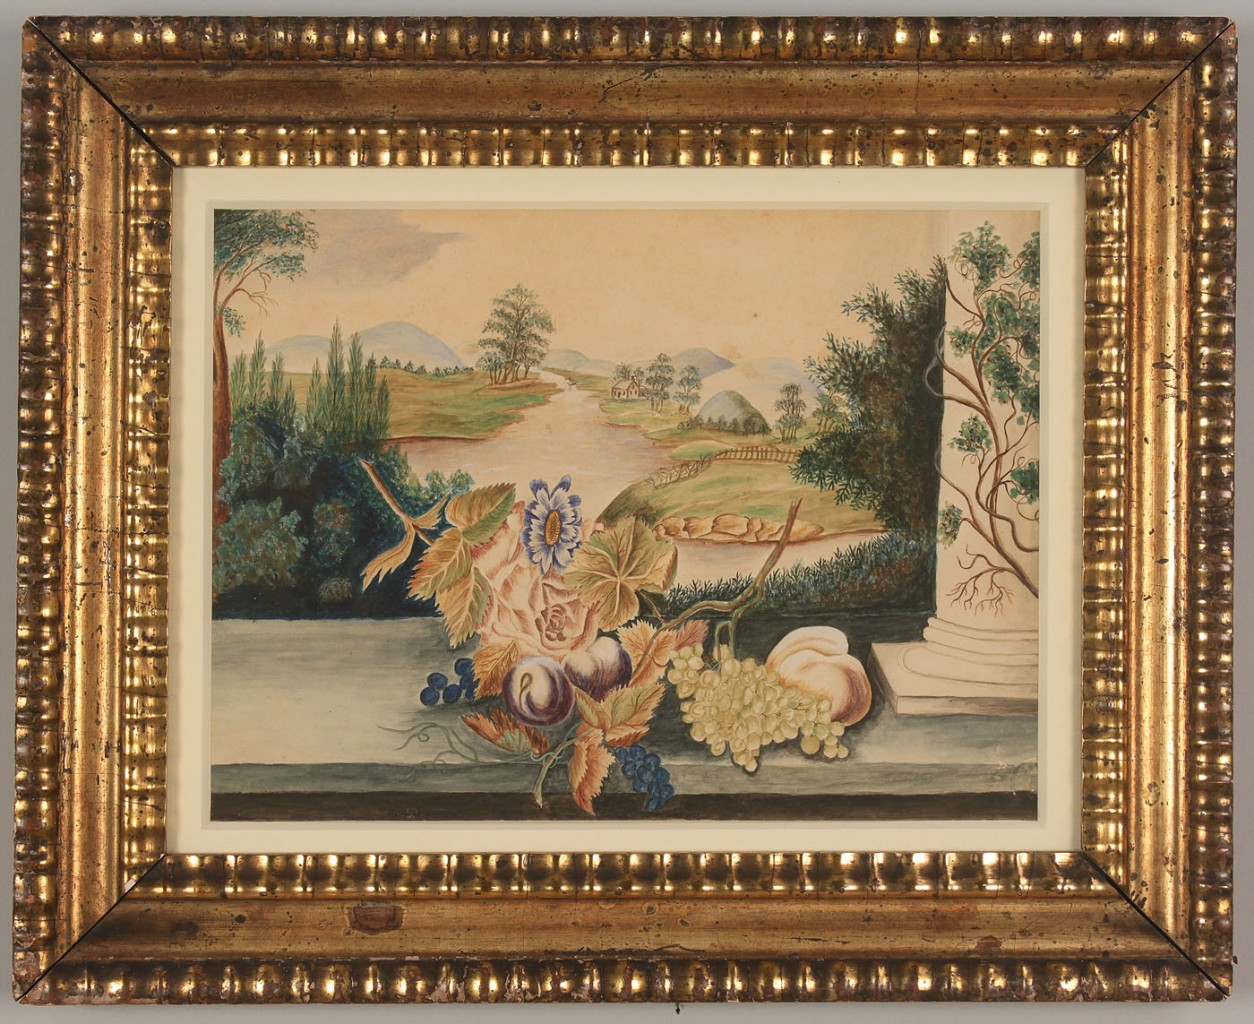 Lot 434: 19th C. Watercolor theorem with grapes and plums